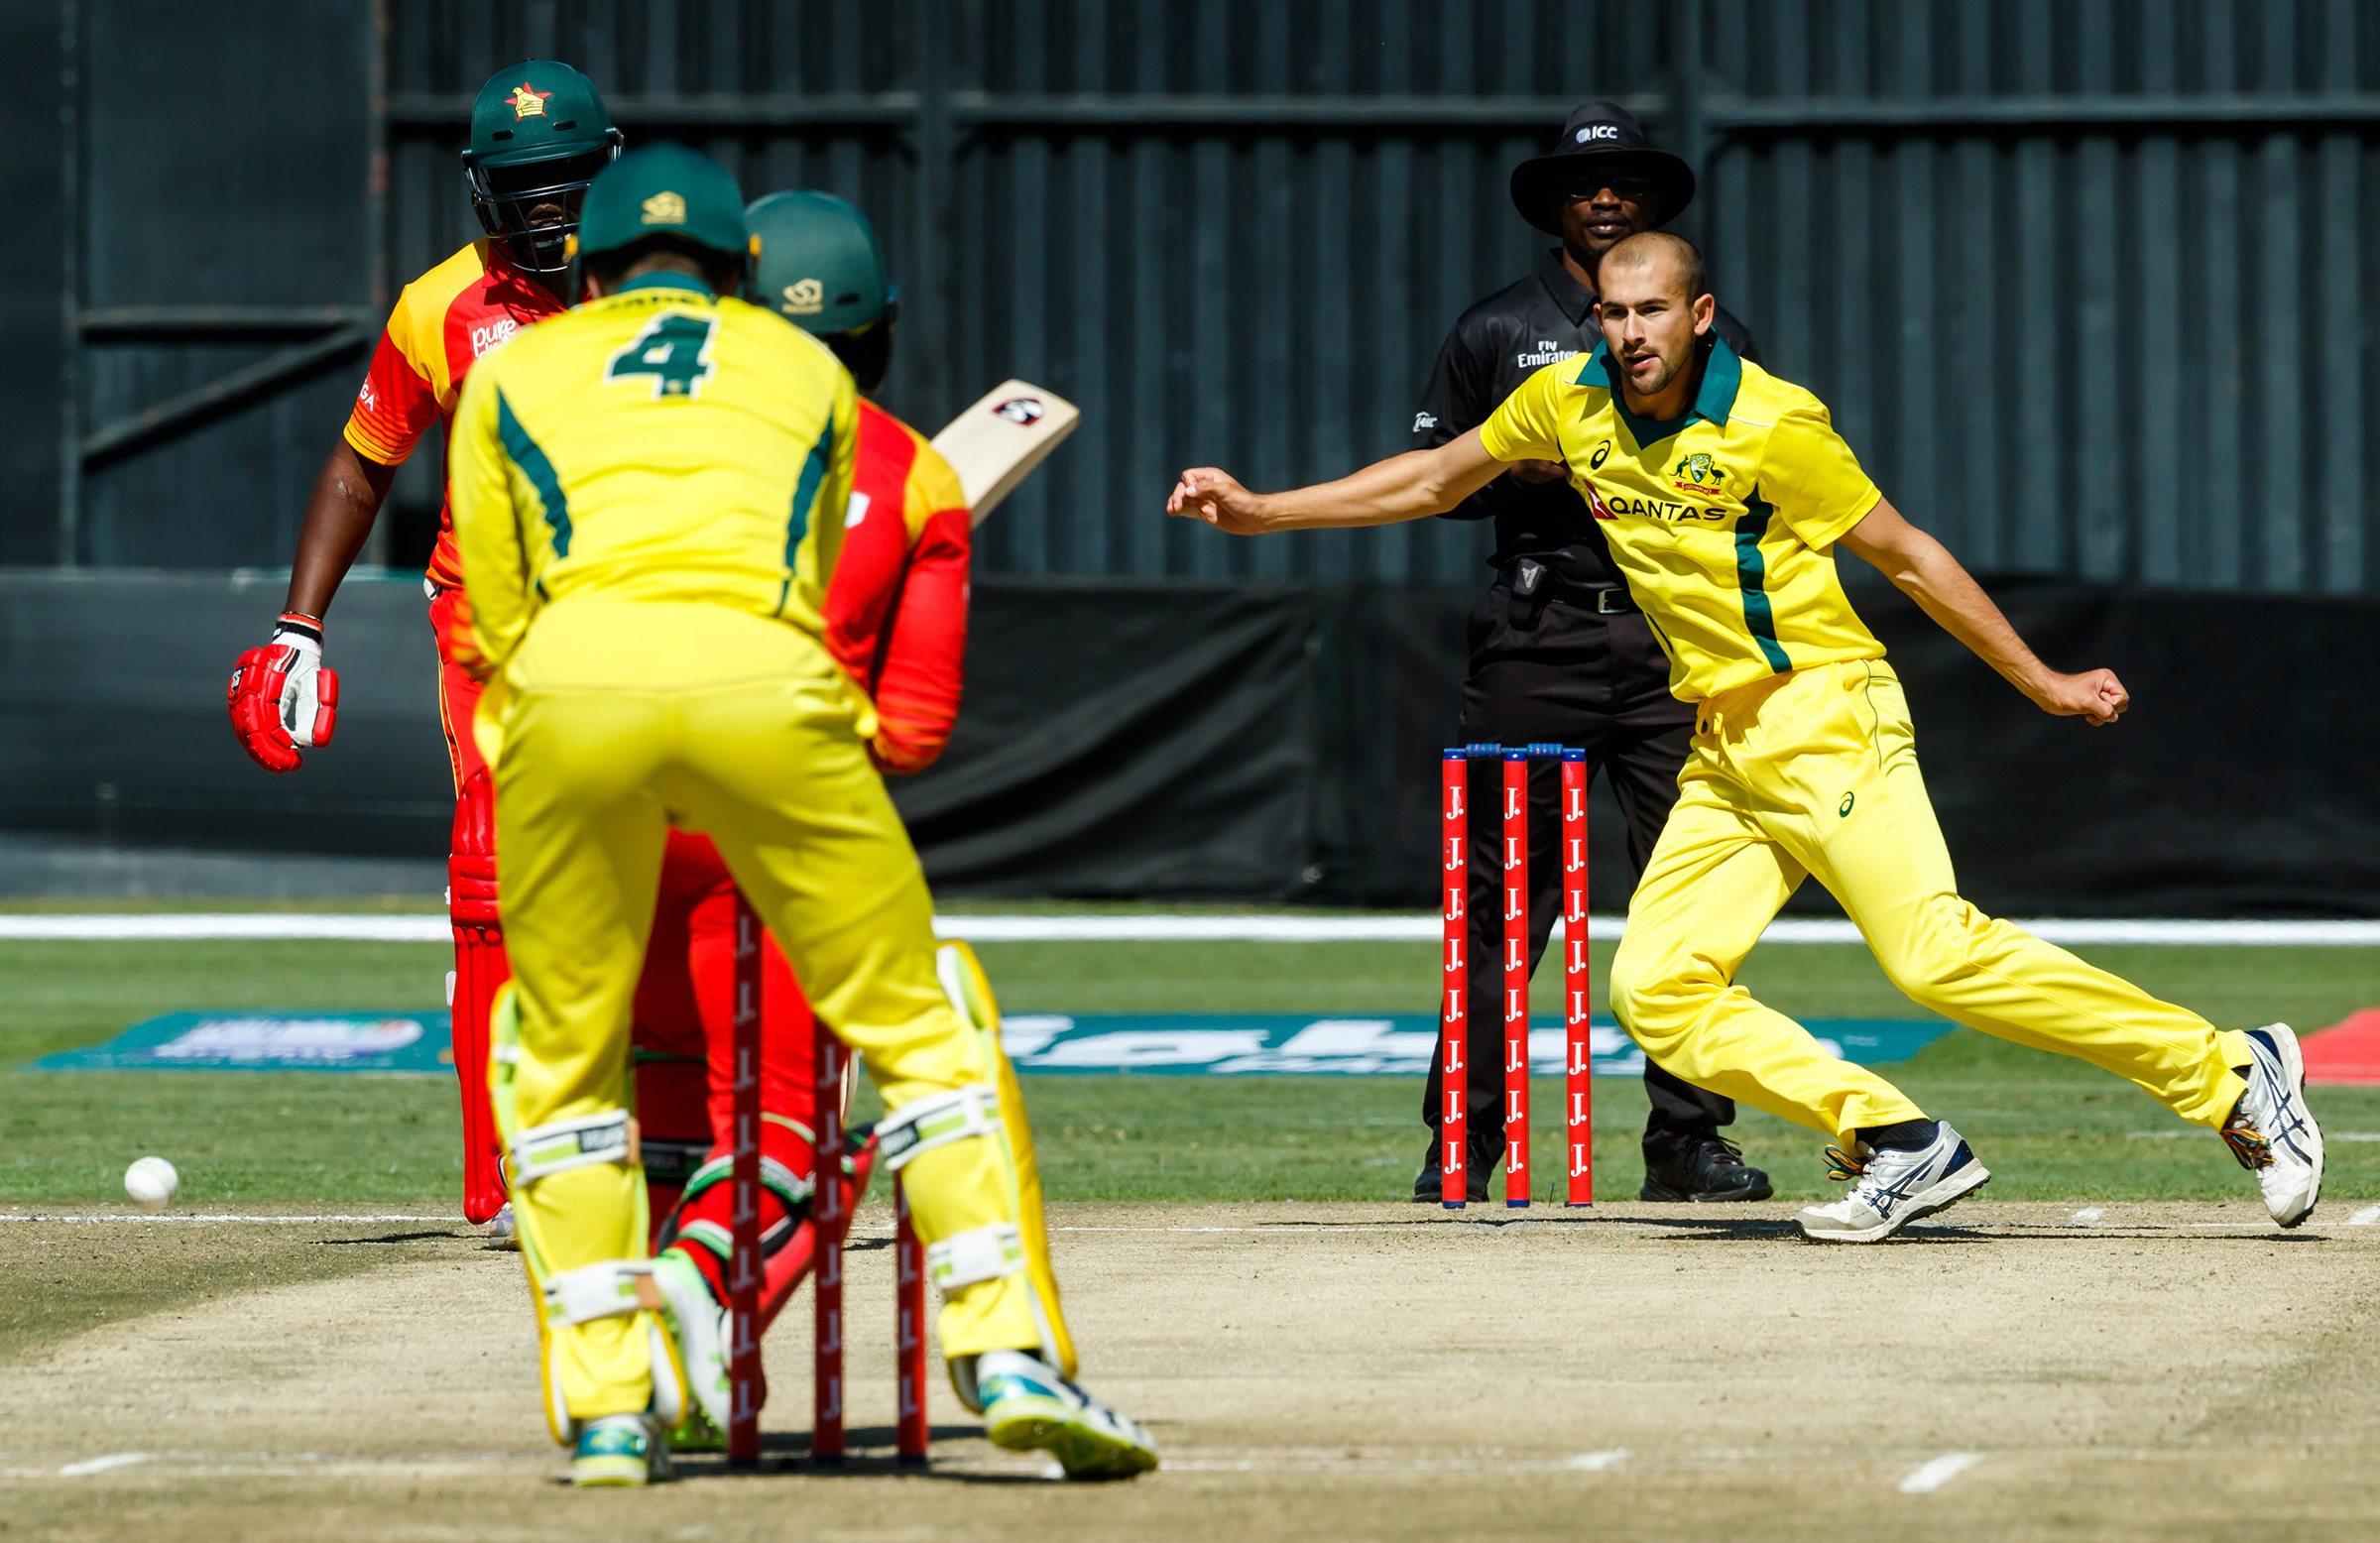 Australia Coach Justin Langer Sees Future ODI Captain in Aaron Finch